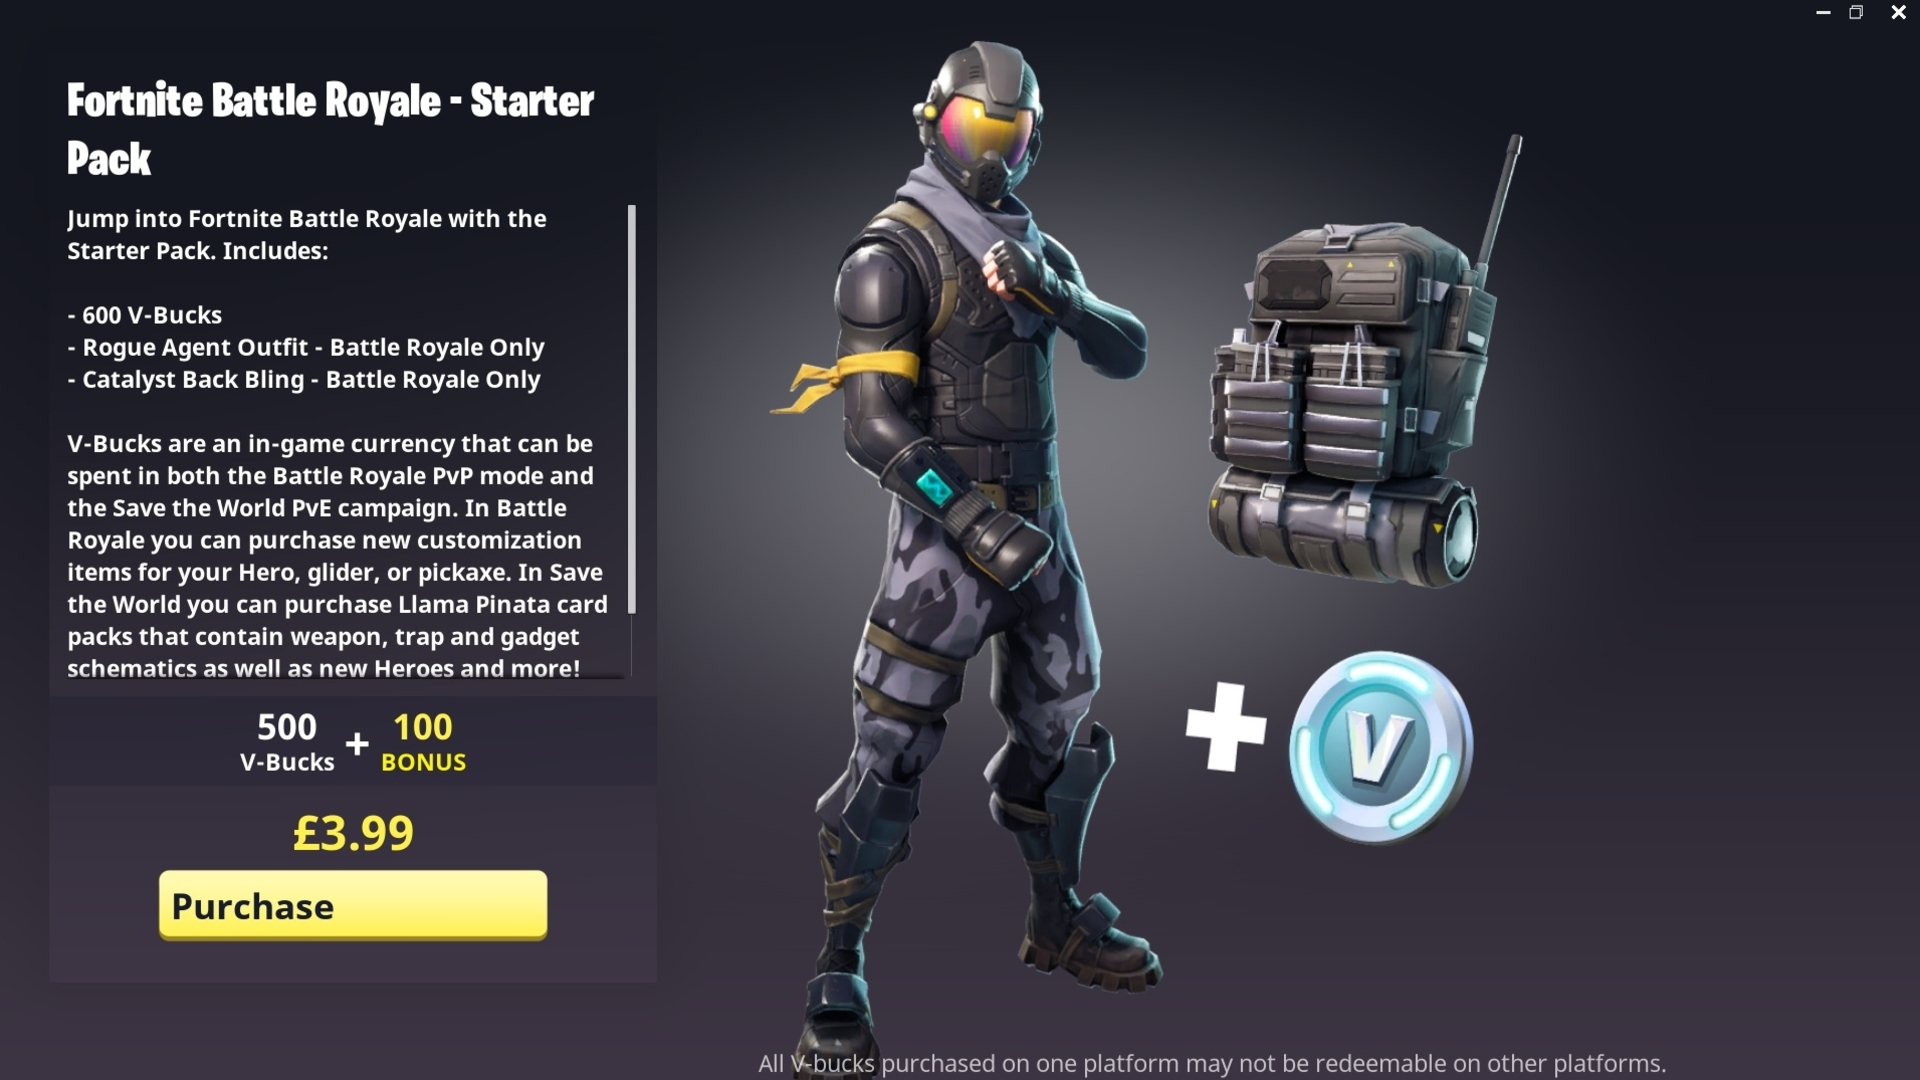 Fortnite Account Fortnite Fortnitebattleroyale Live Fortnite Launch